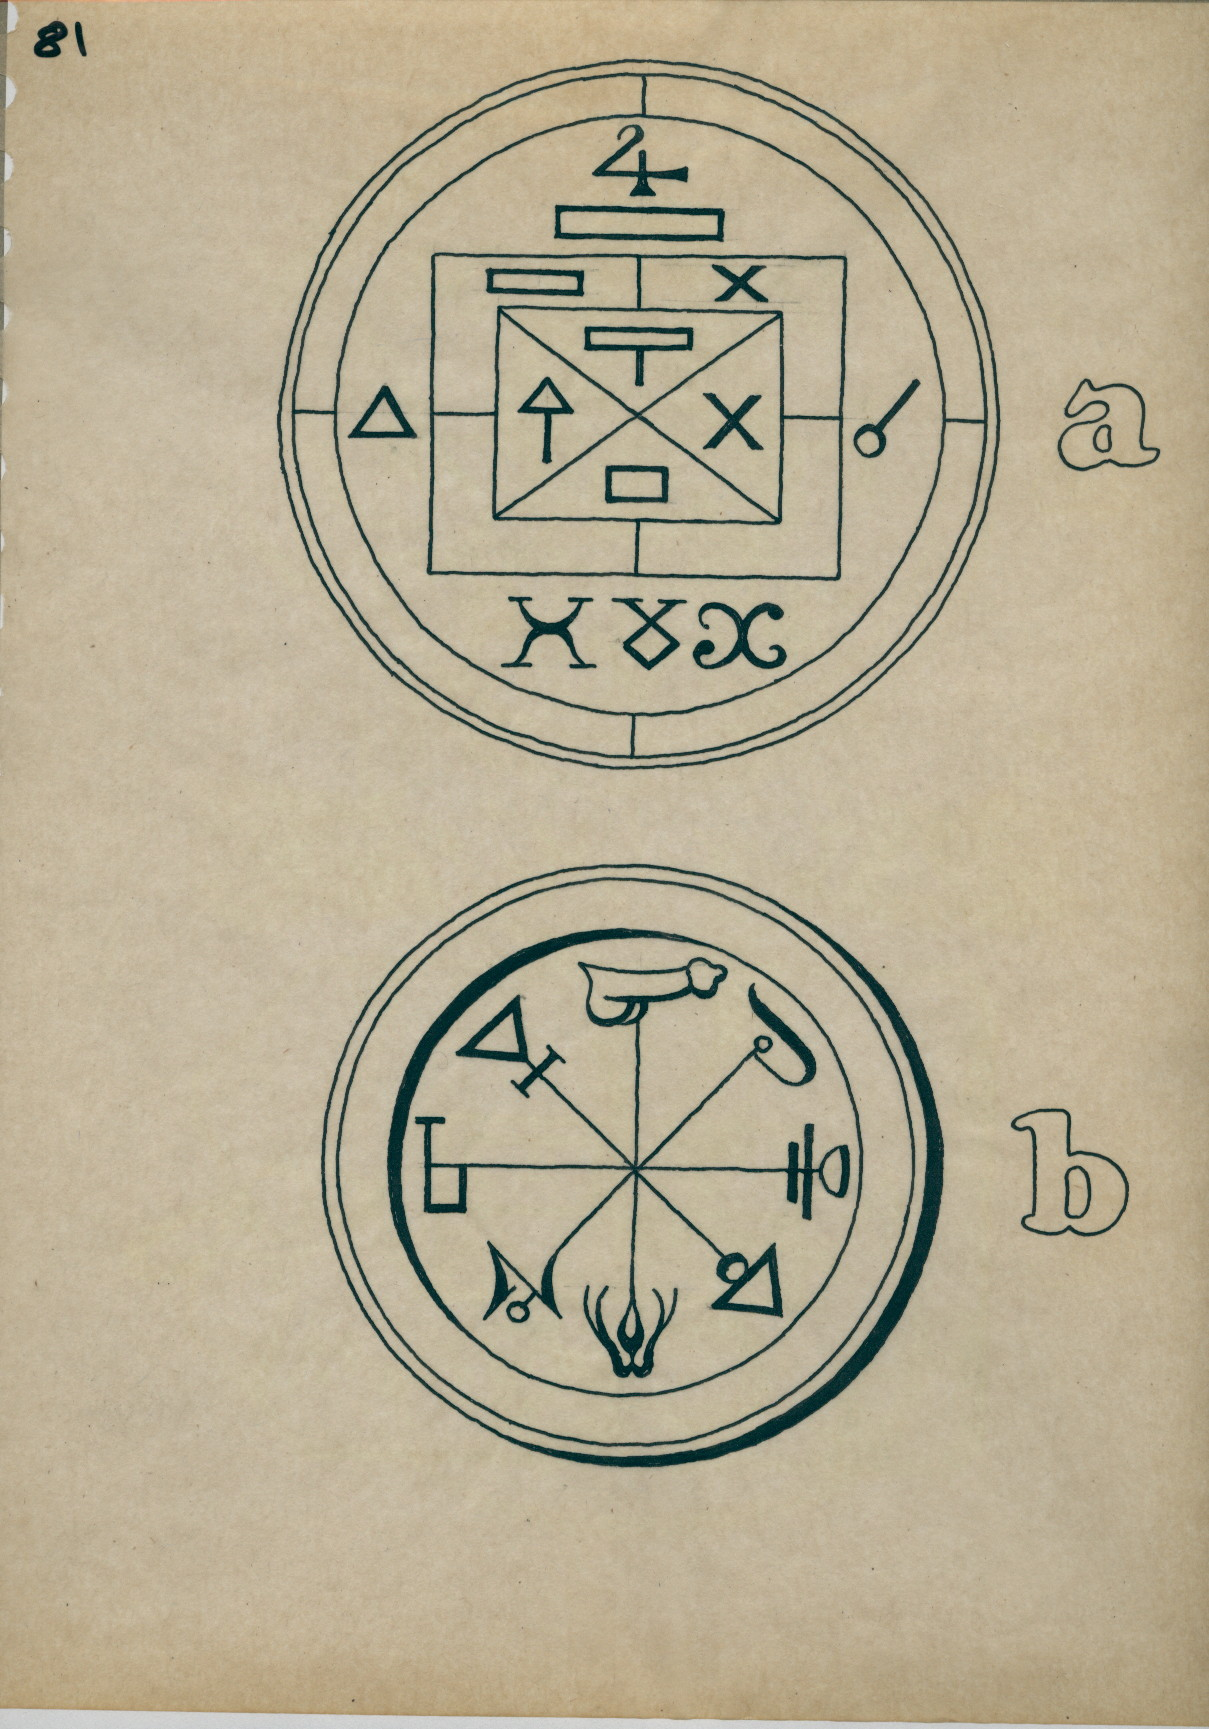 R181 Drawing Of Two Circles With Symbols Amongst Which A